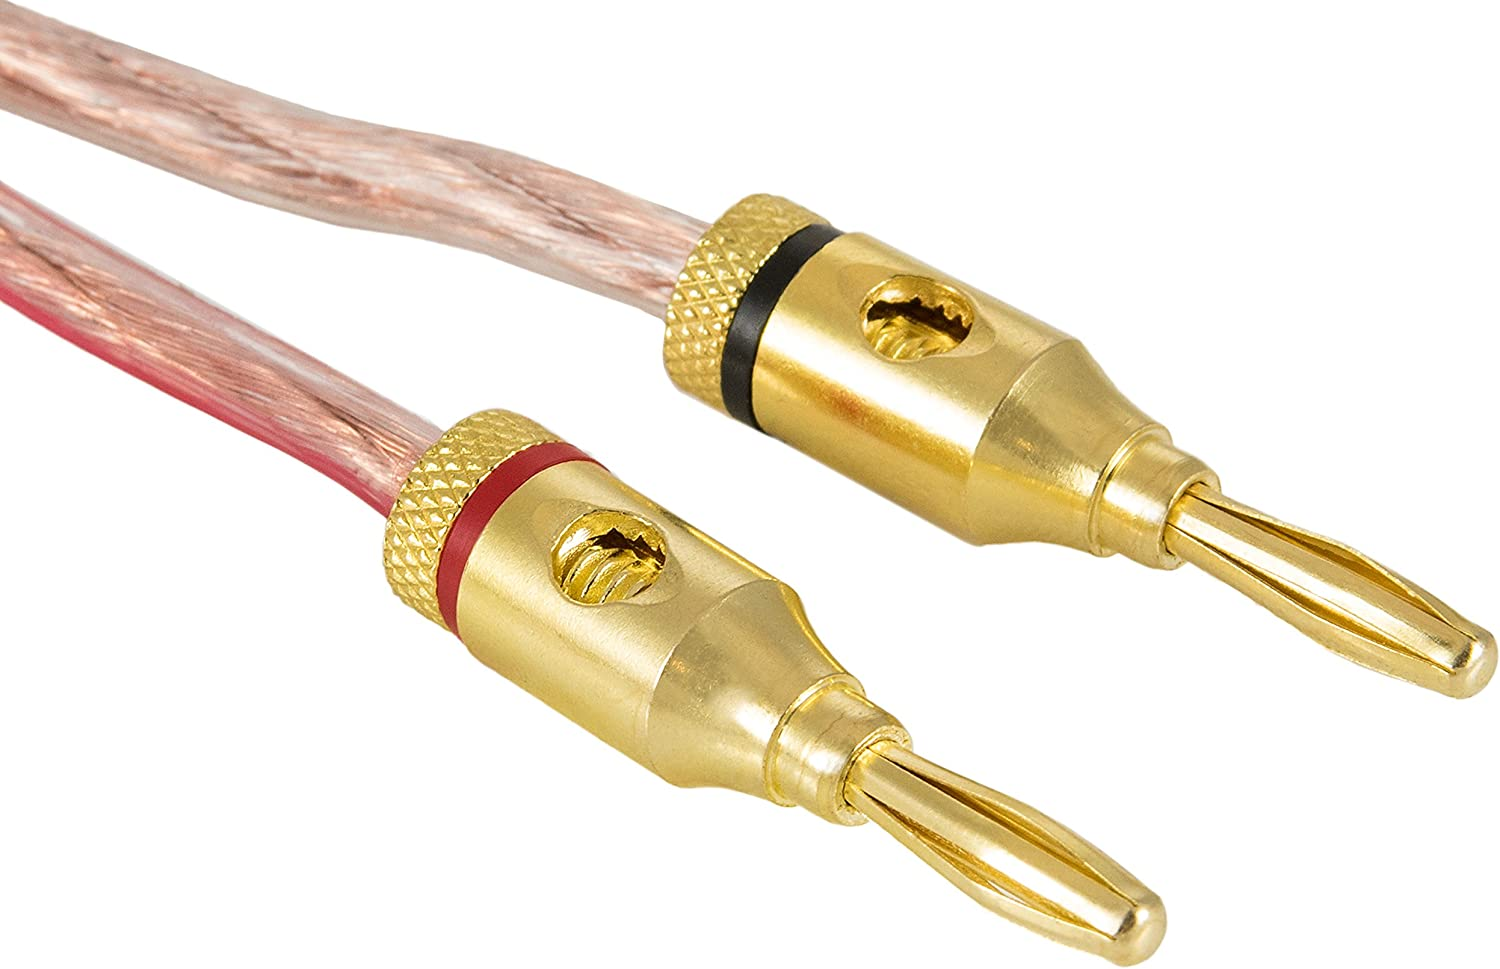 Poppstar 6x black, 6x red Bananas for speaker cables 2-piece plug 24k gold plated 12x High End Banana Plug up to 4 mm/²